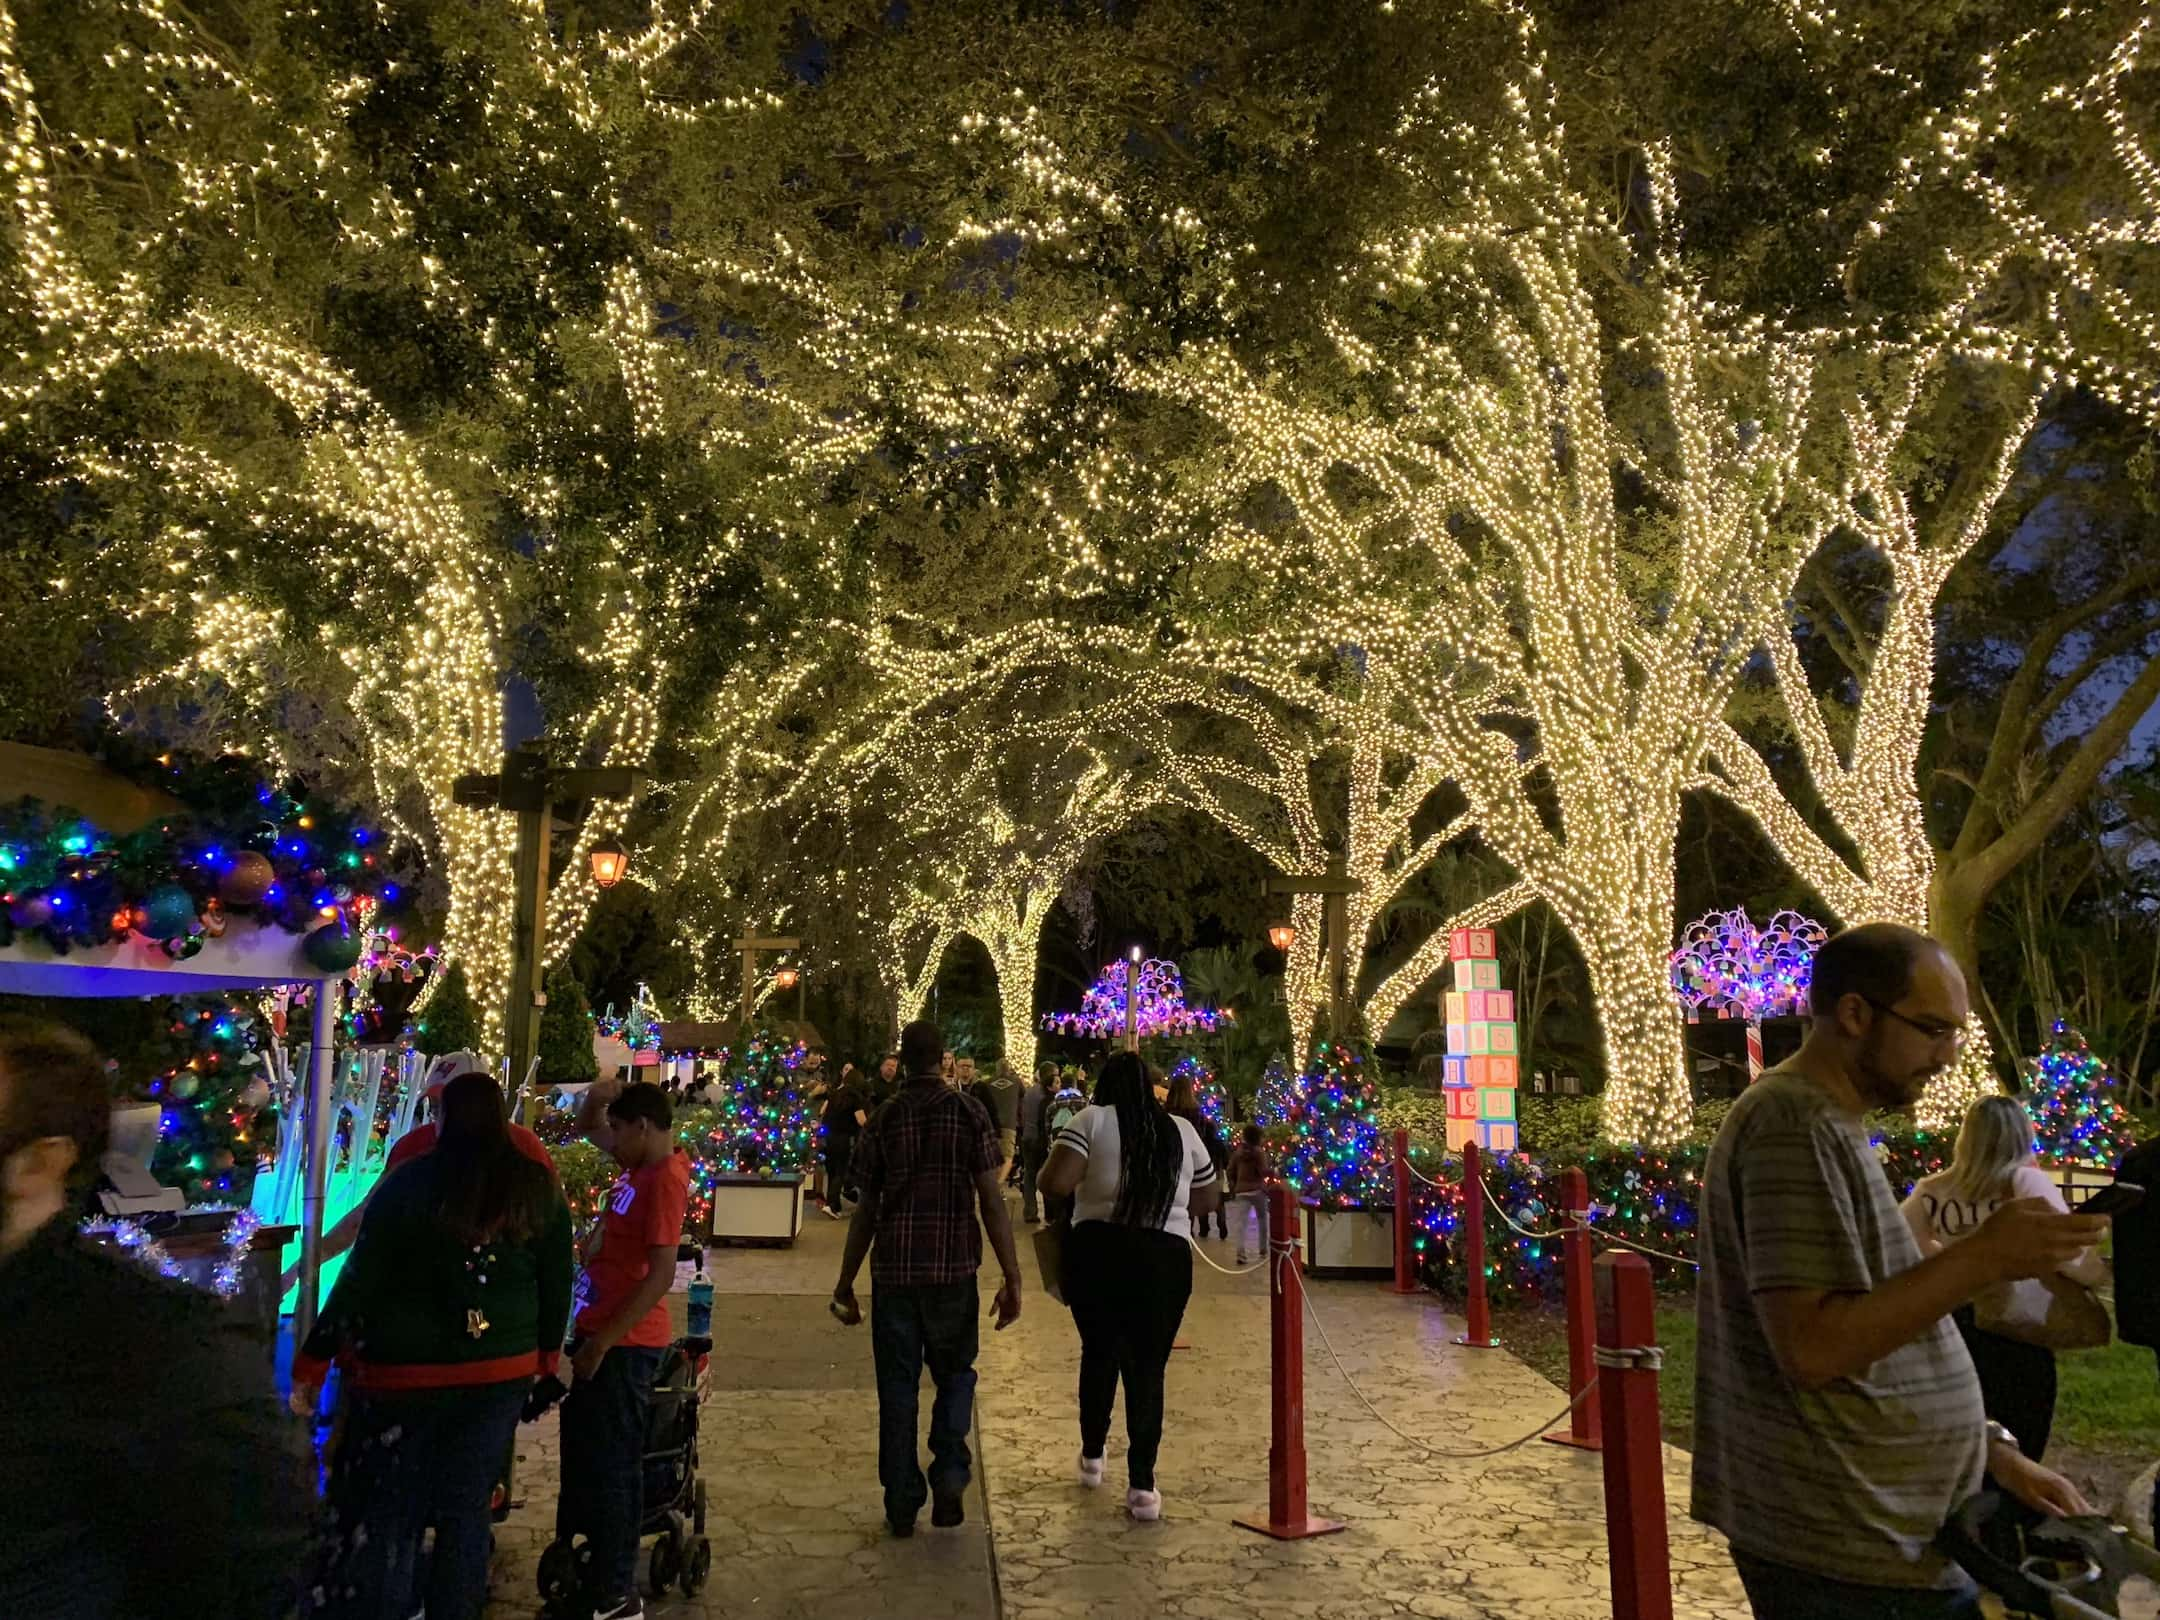 Christmas Kangaroo Lights.Busch Gardens Christmas Town Tampa Bay 2018 Kim And Carrie